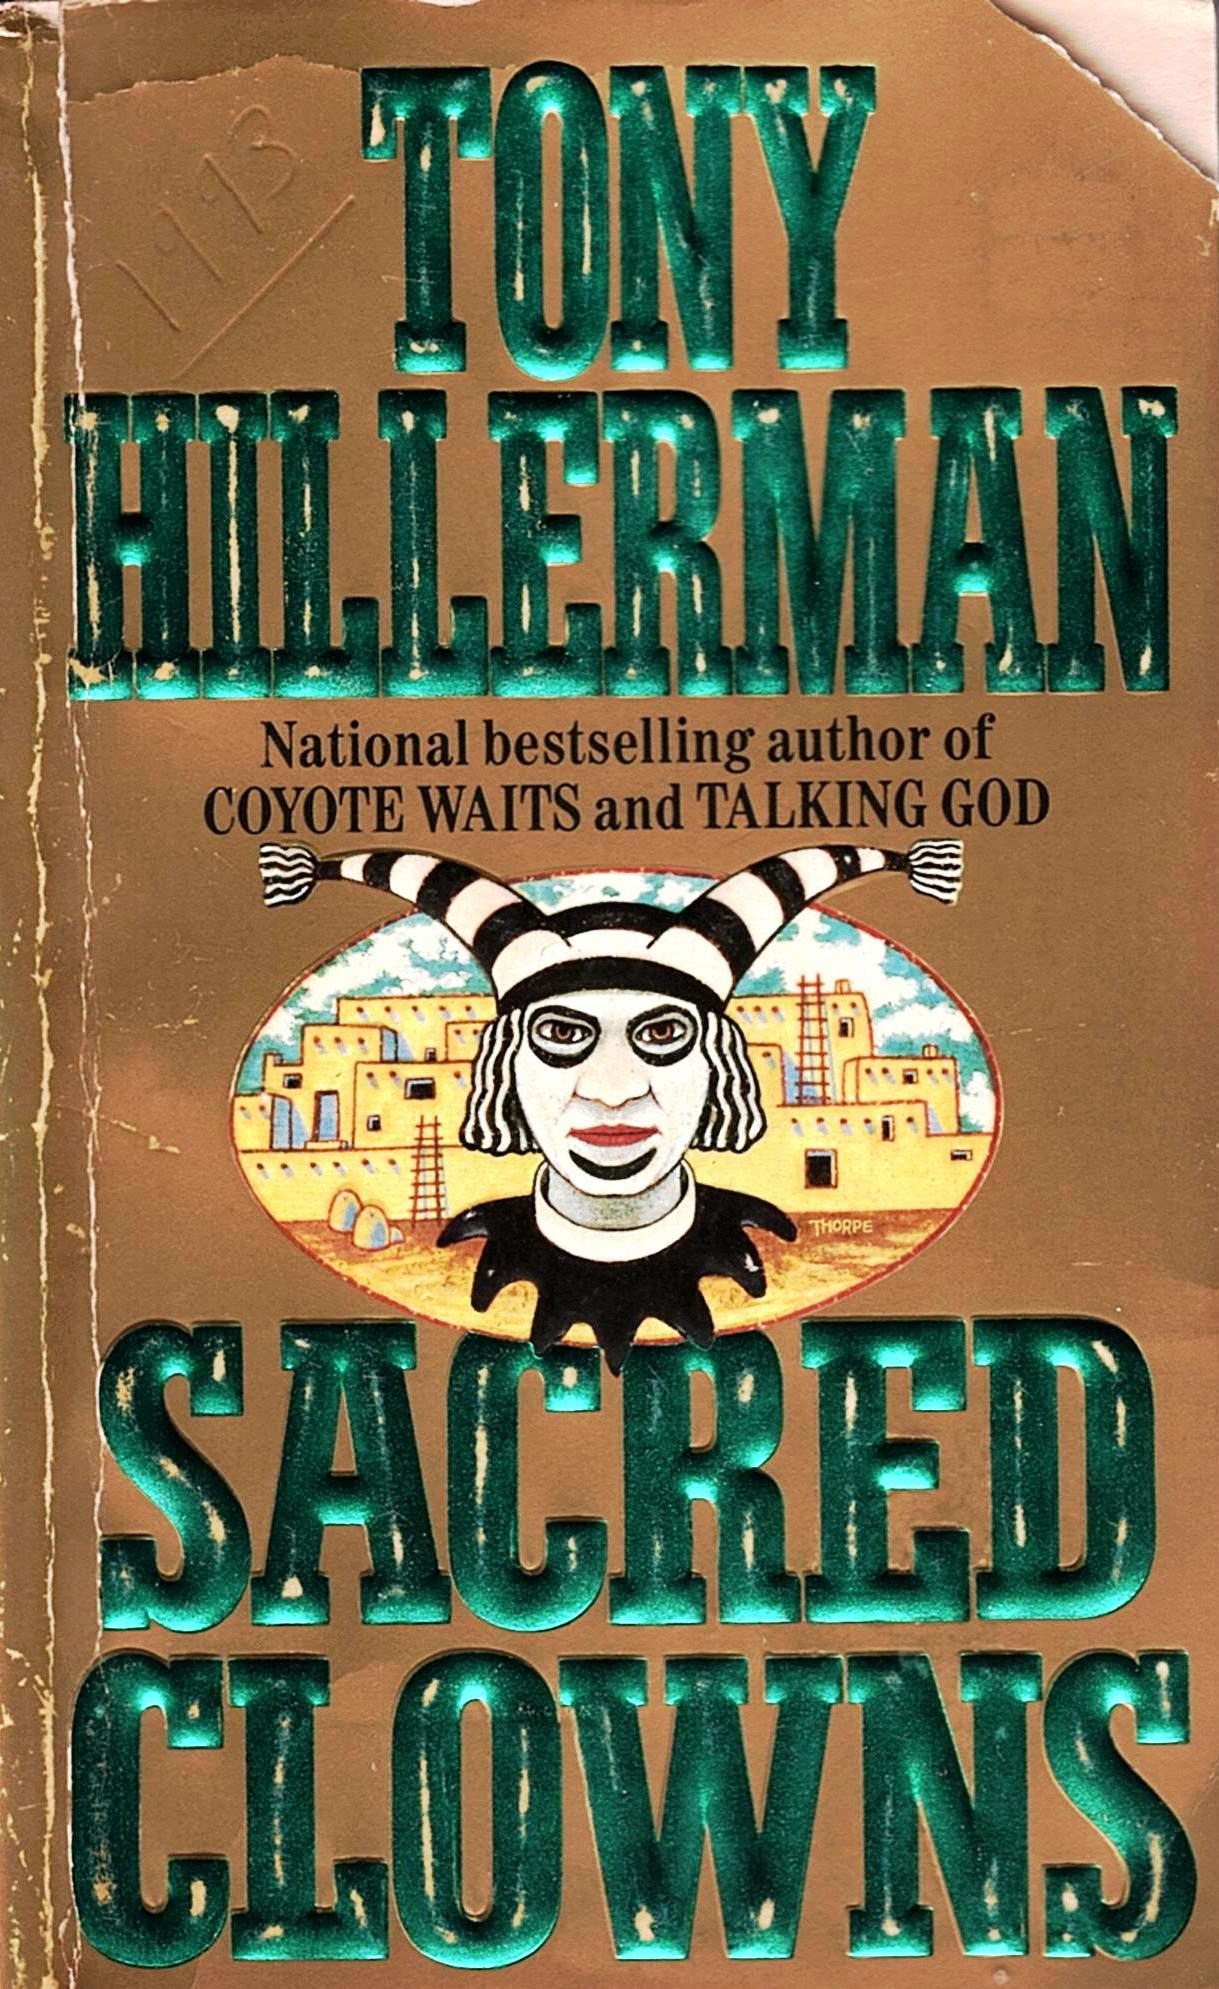 Sacred Clowns book